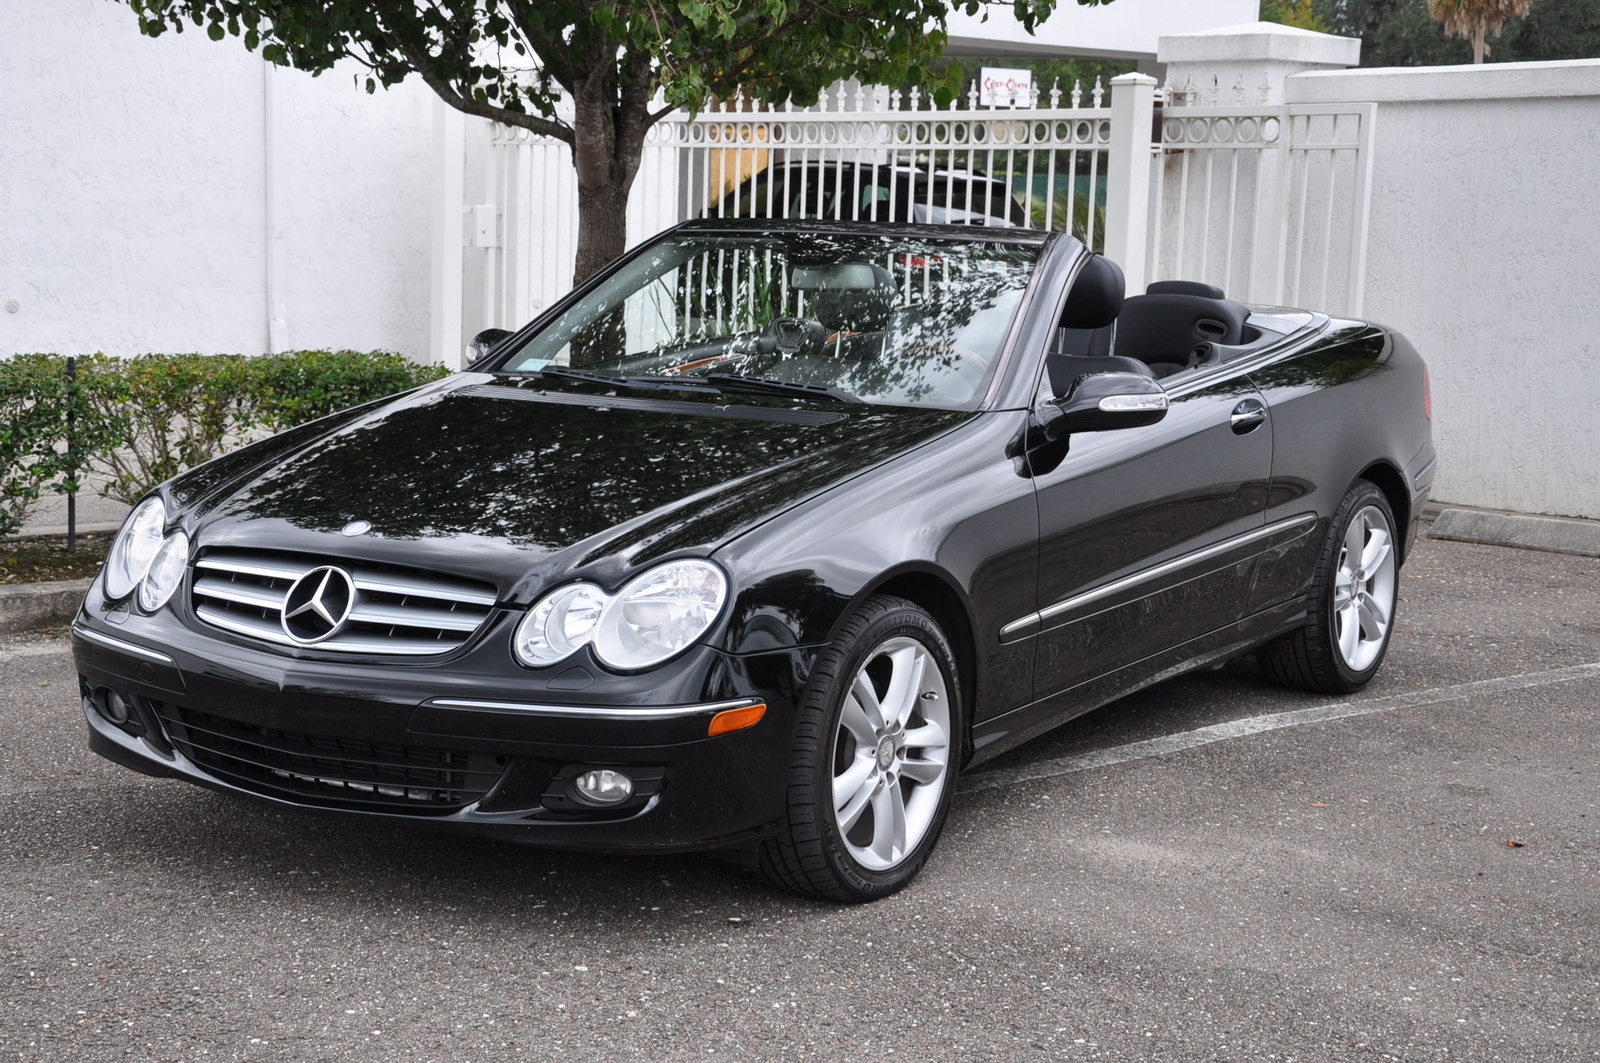 2004 mercedes benz clk convertible for sale for Mercedes benz clk 2012